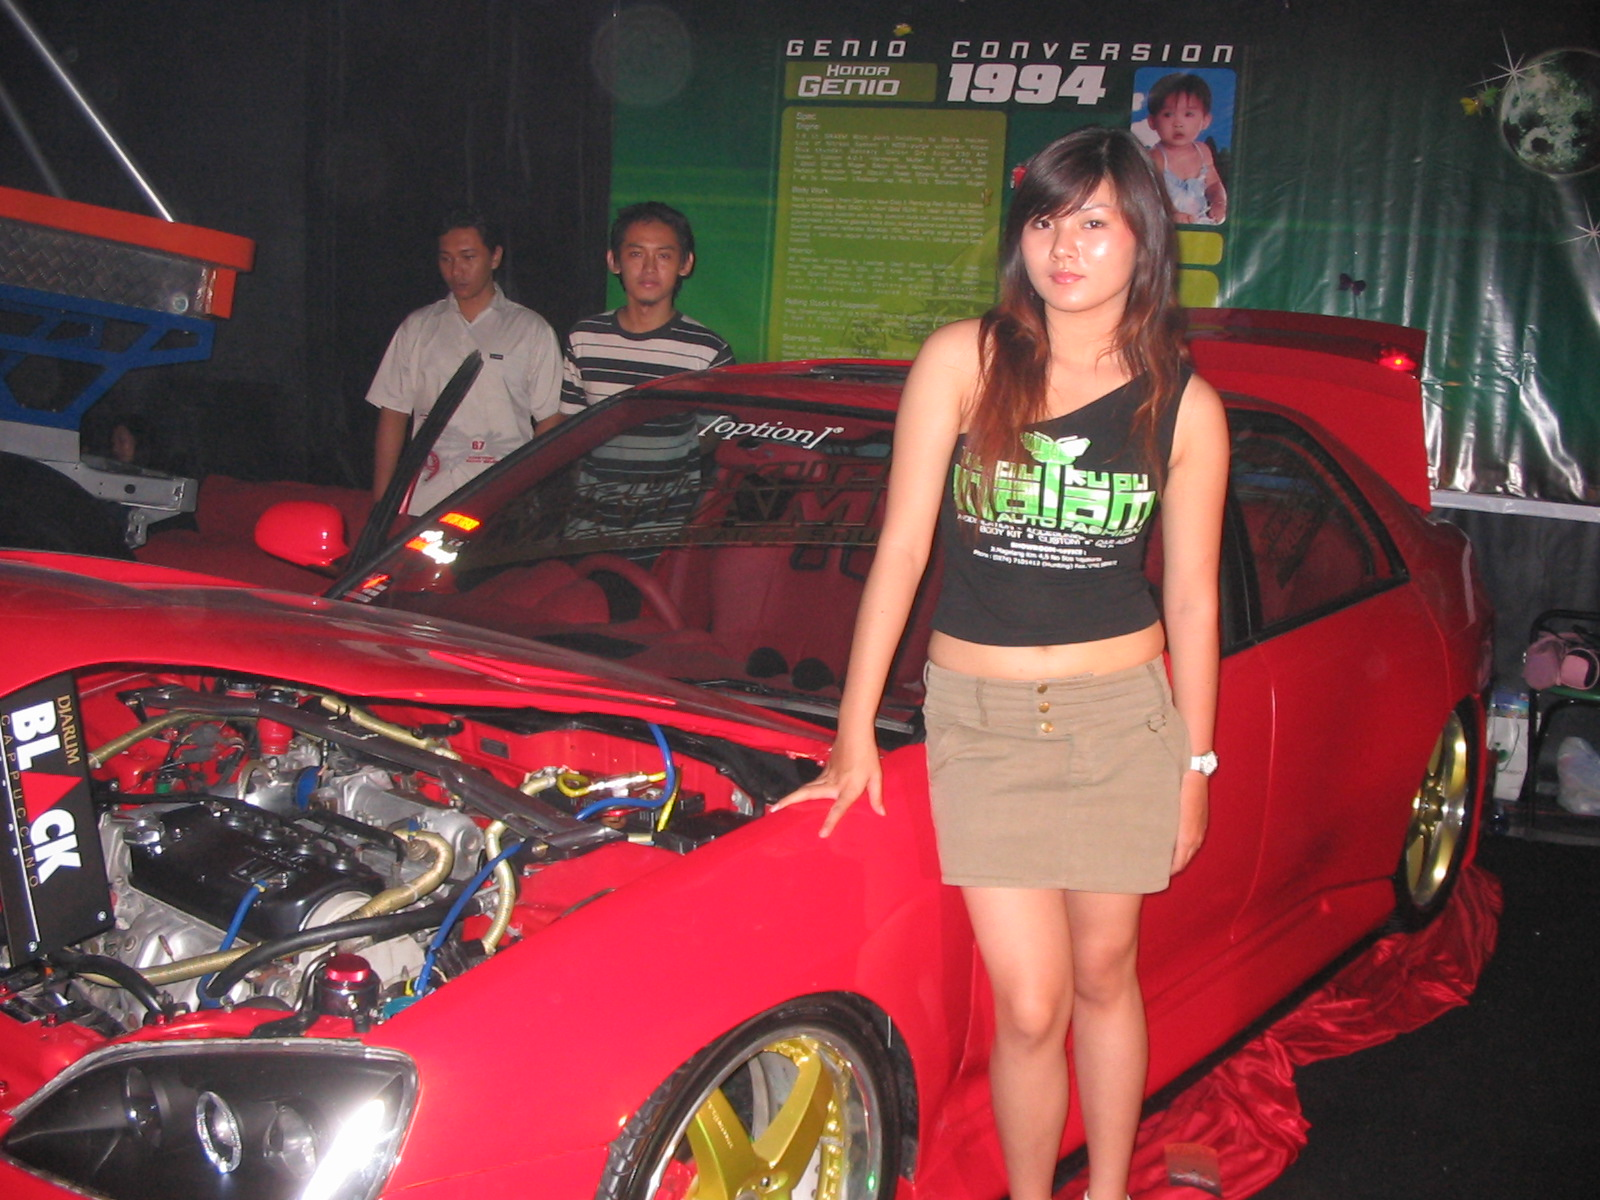 modif+car+girl.JPG